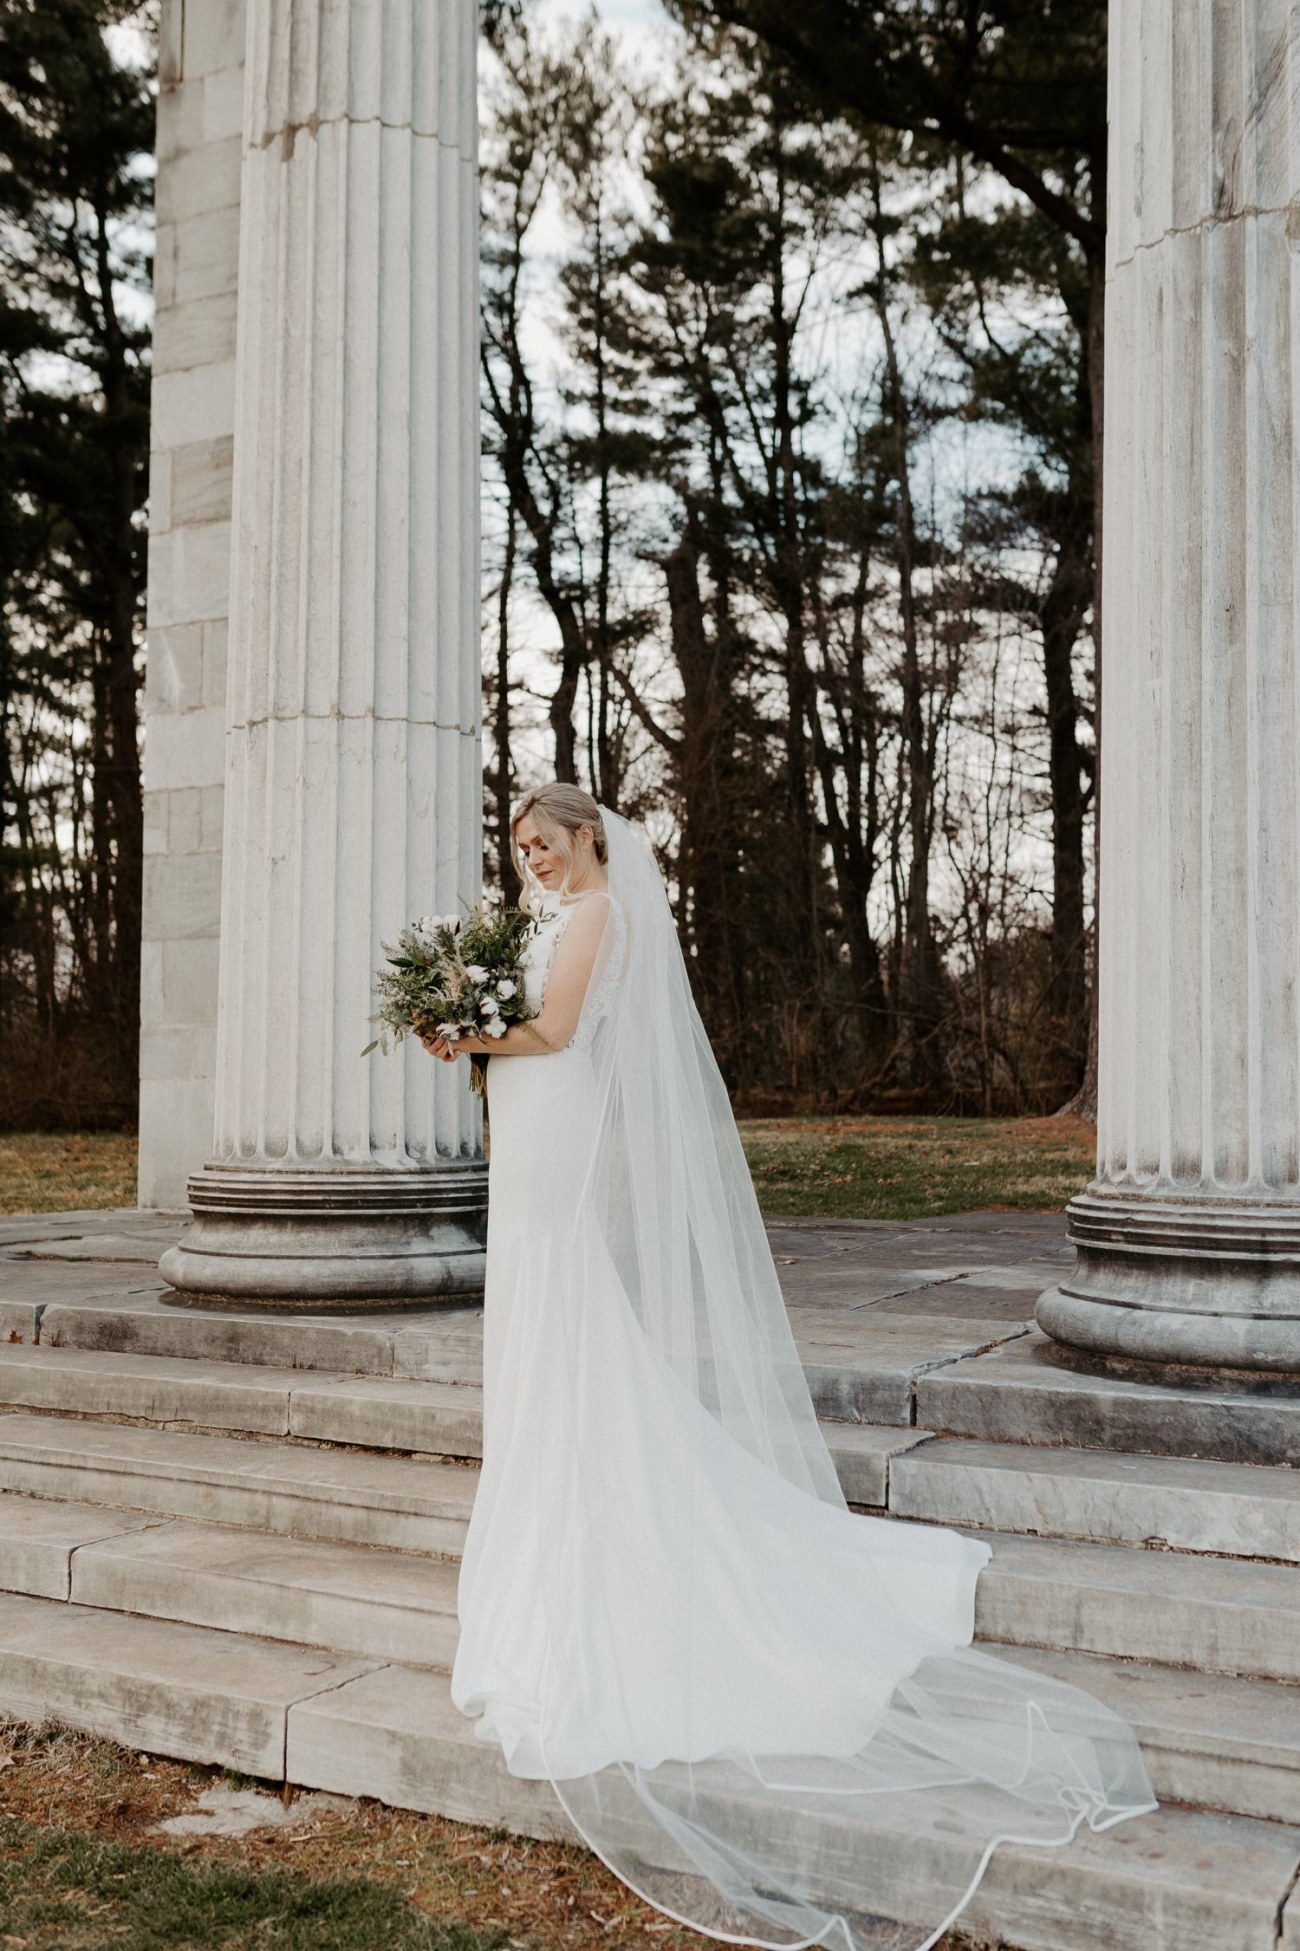 Princeton Battlefield Wedding Princeton University Elopement New Jersey Wedding Photographer Anais Possamai Photography 23